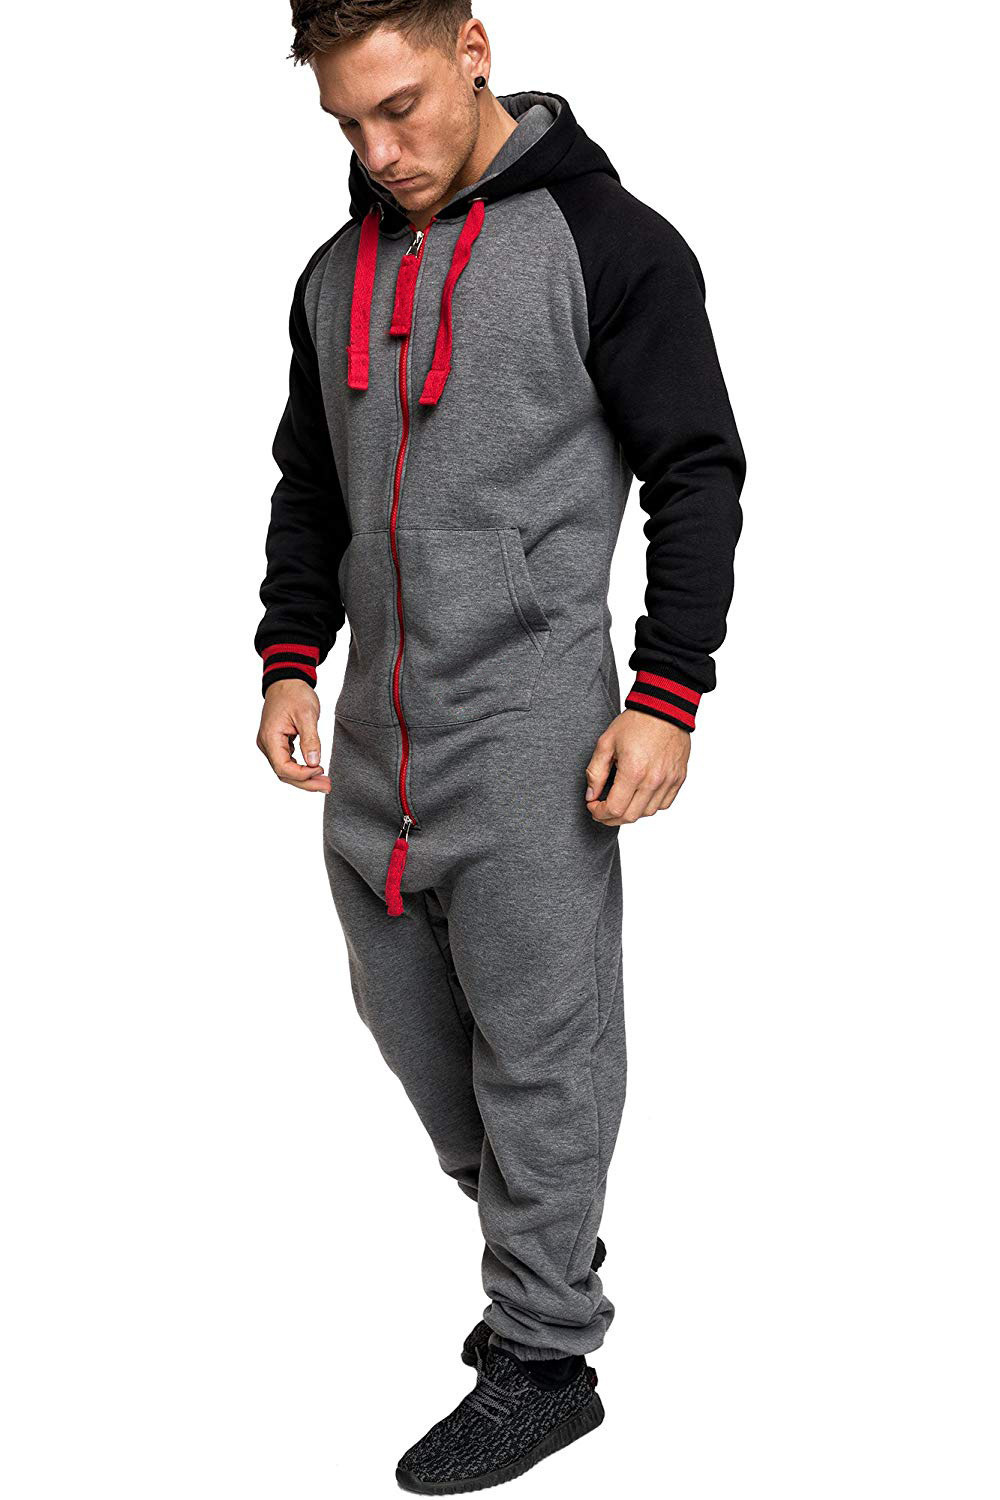 Casual Autumn Hooded Tracksuit Jumpsuit Long Pants Romper For Male Mens Fleece warm Overalls Sweatshirts Male Streetwear X9126 26